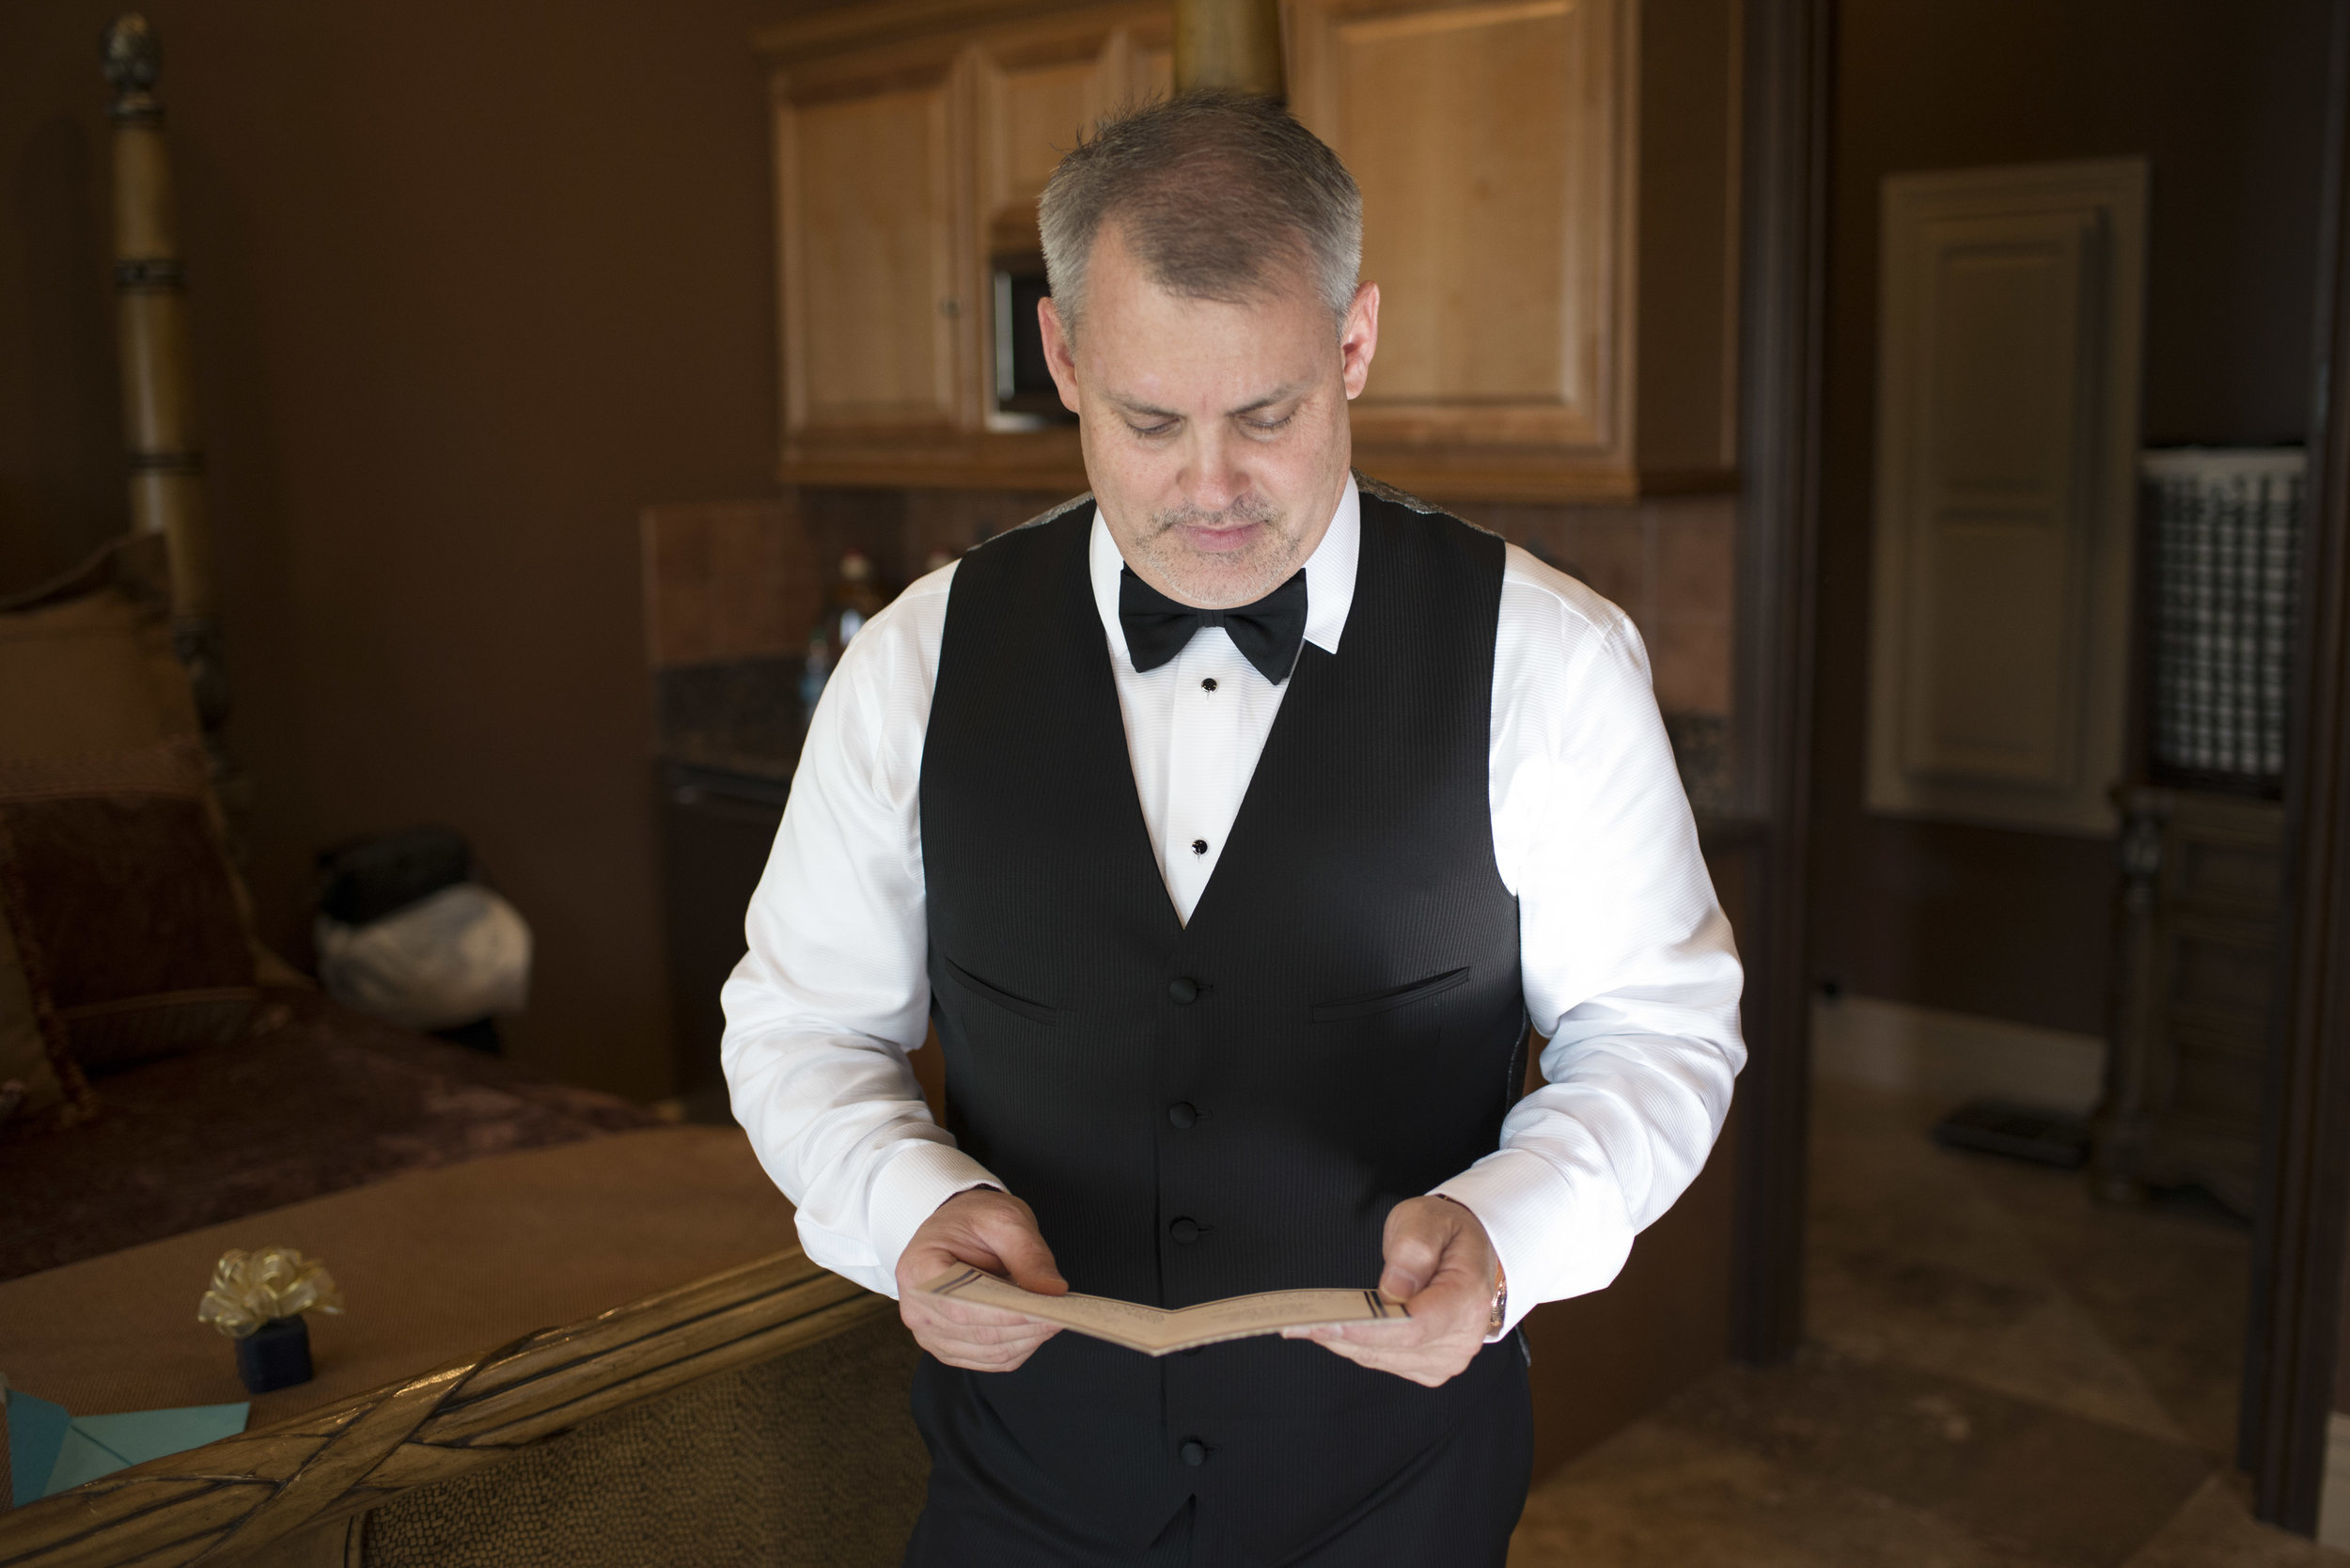 Groom reading his vows before wedding. Luxury Las Vegas Wedding Planner Andrea Eppolito. Image by AltF Photography.